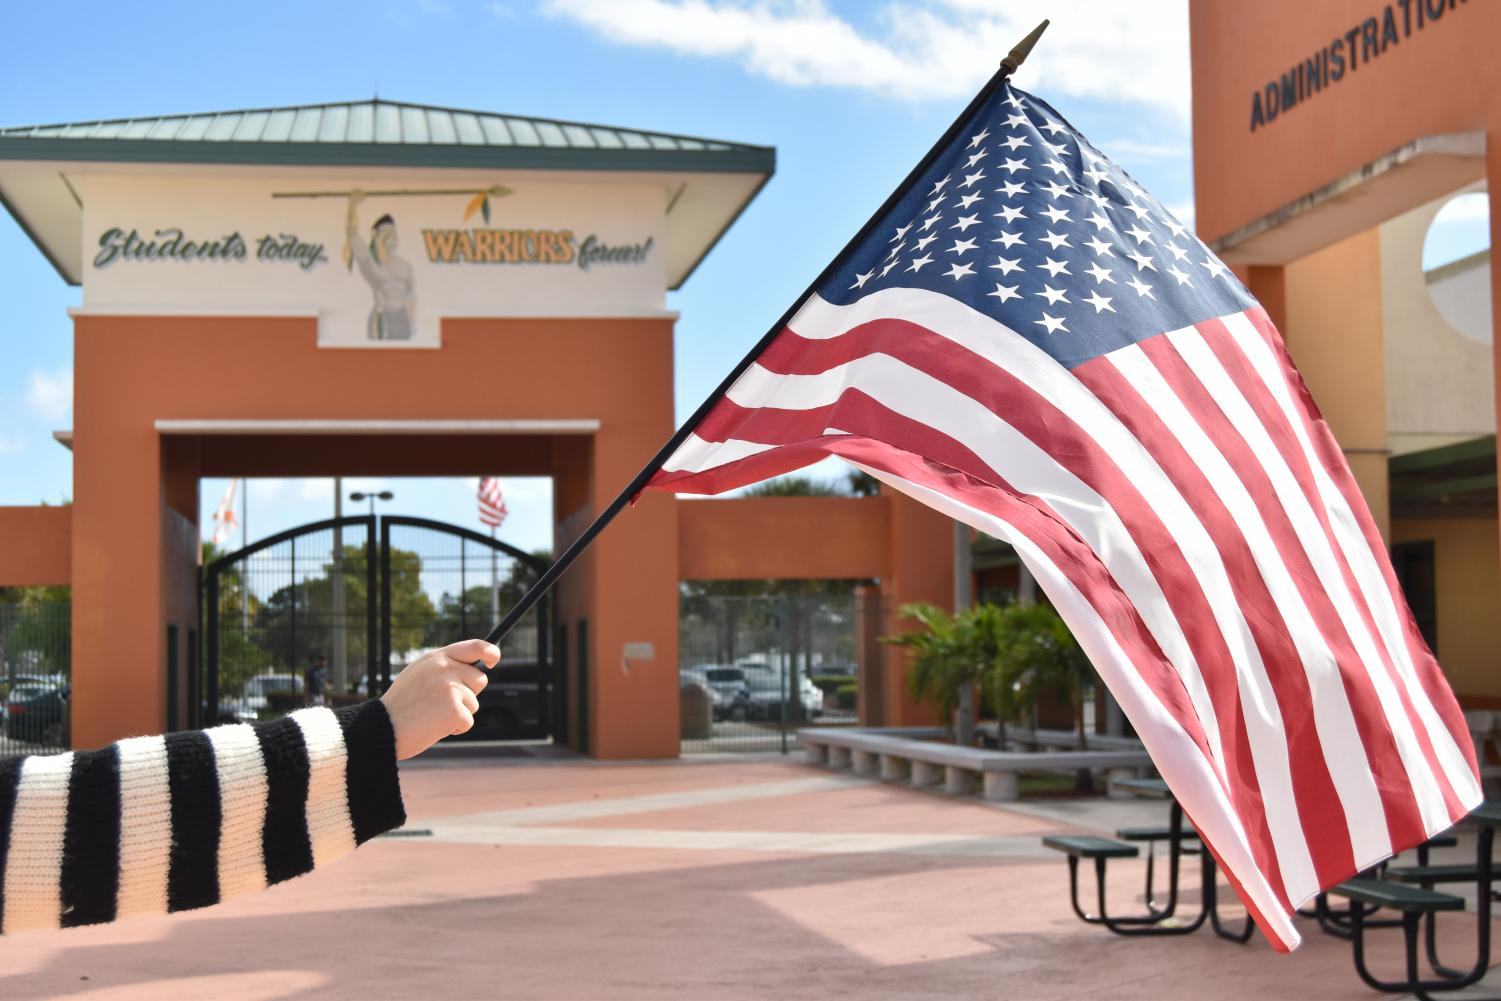 JHS Student waving the American flag at the school's entrance.